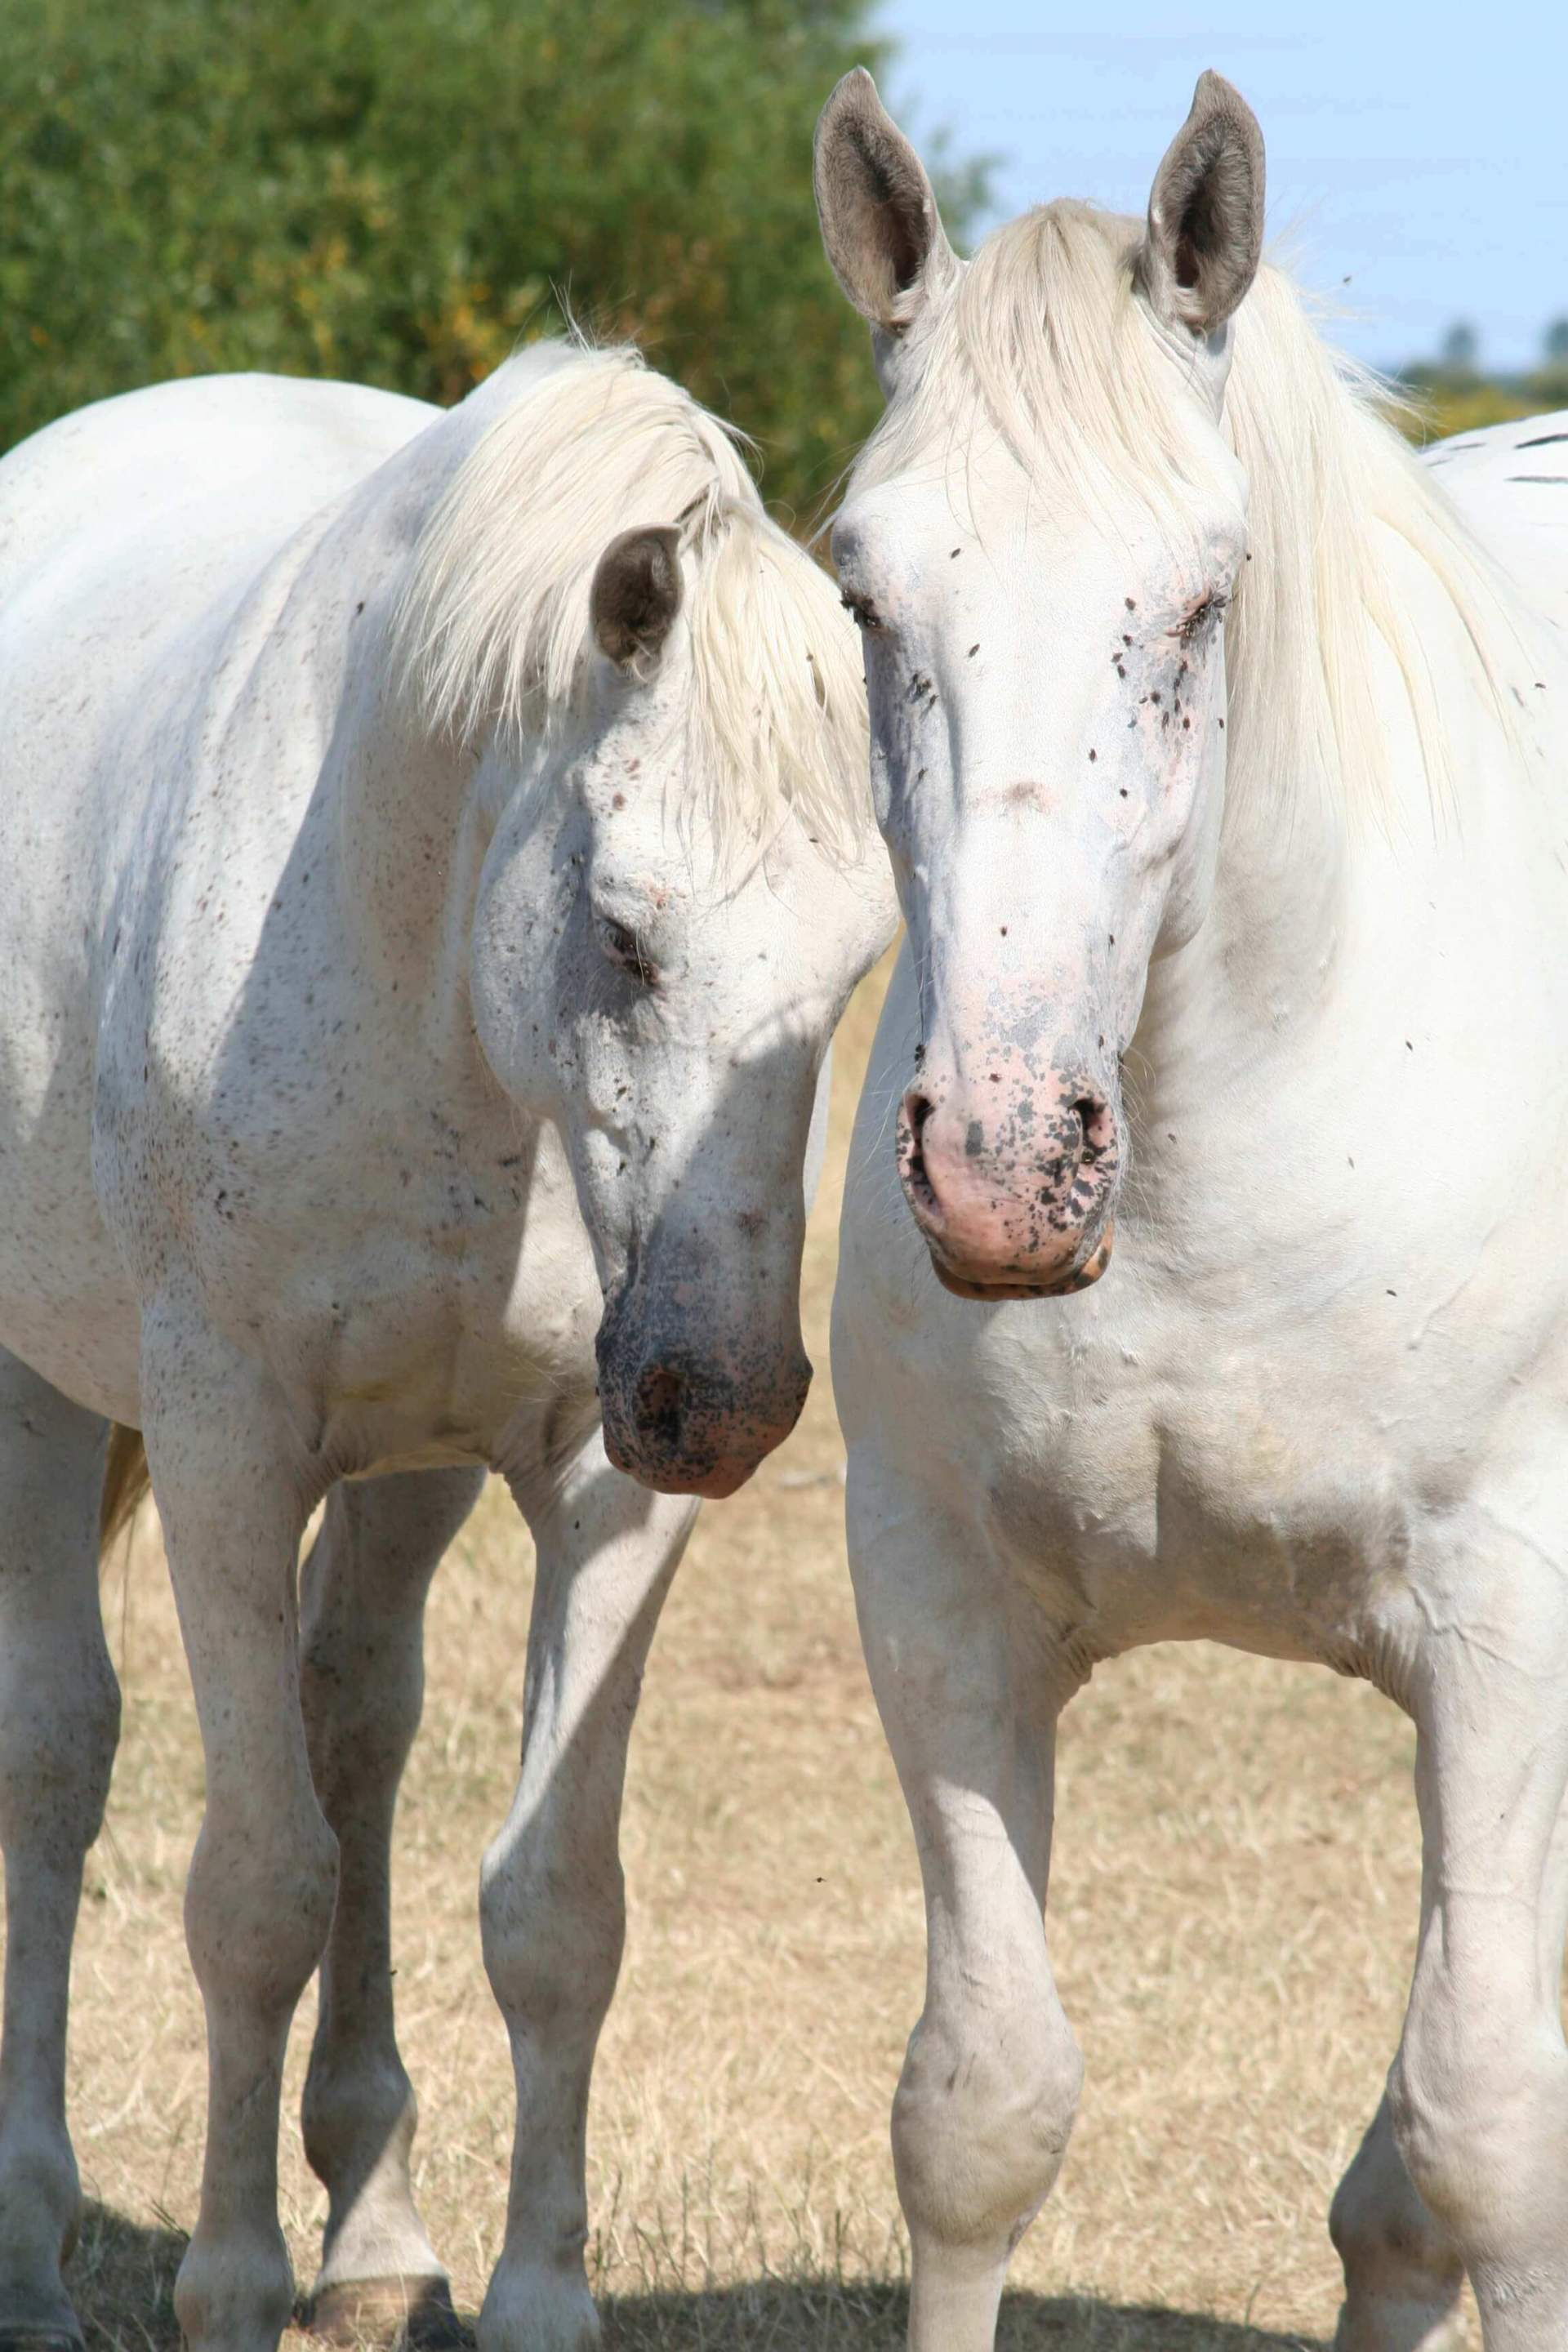 Horses covered in flies